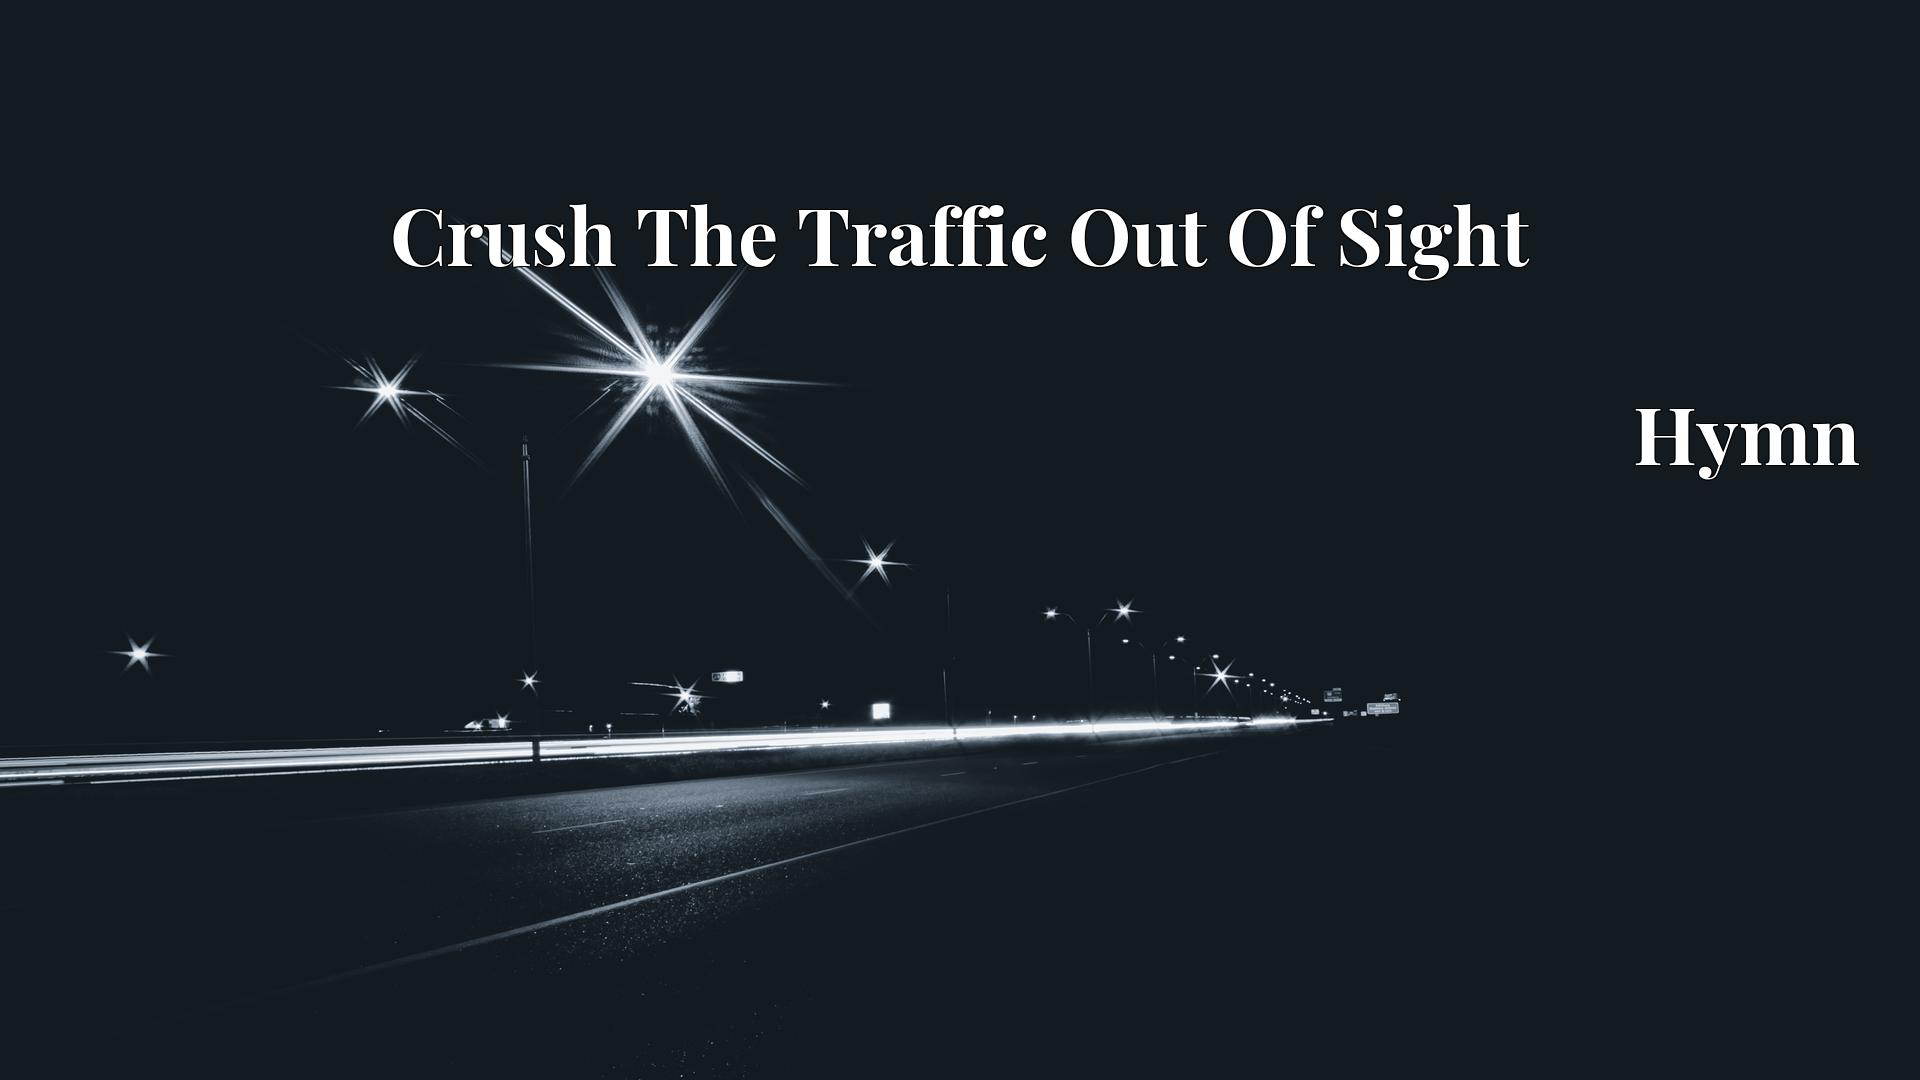 Crush The Traffic Out Of Sight - Hymn